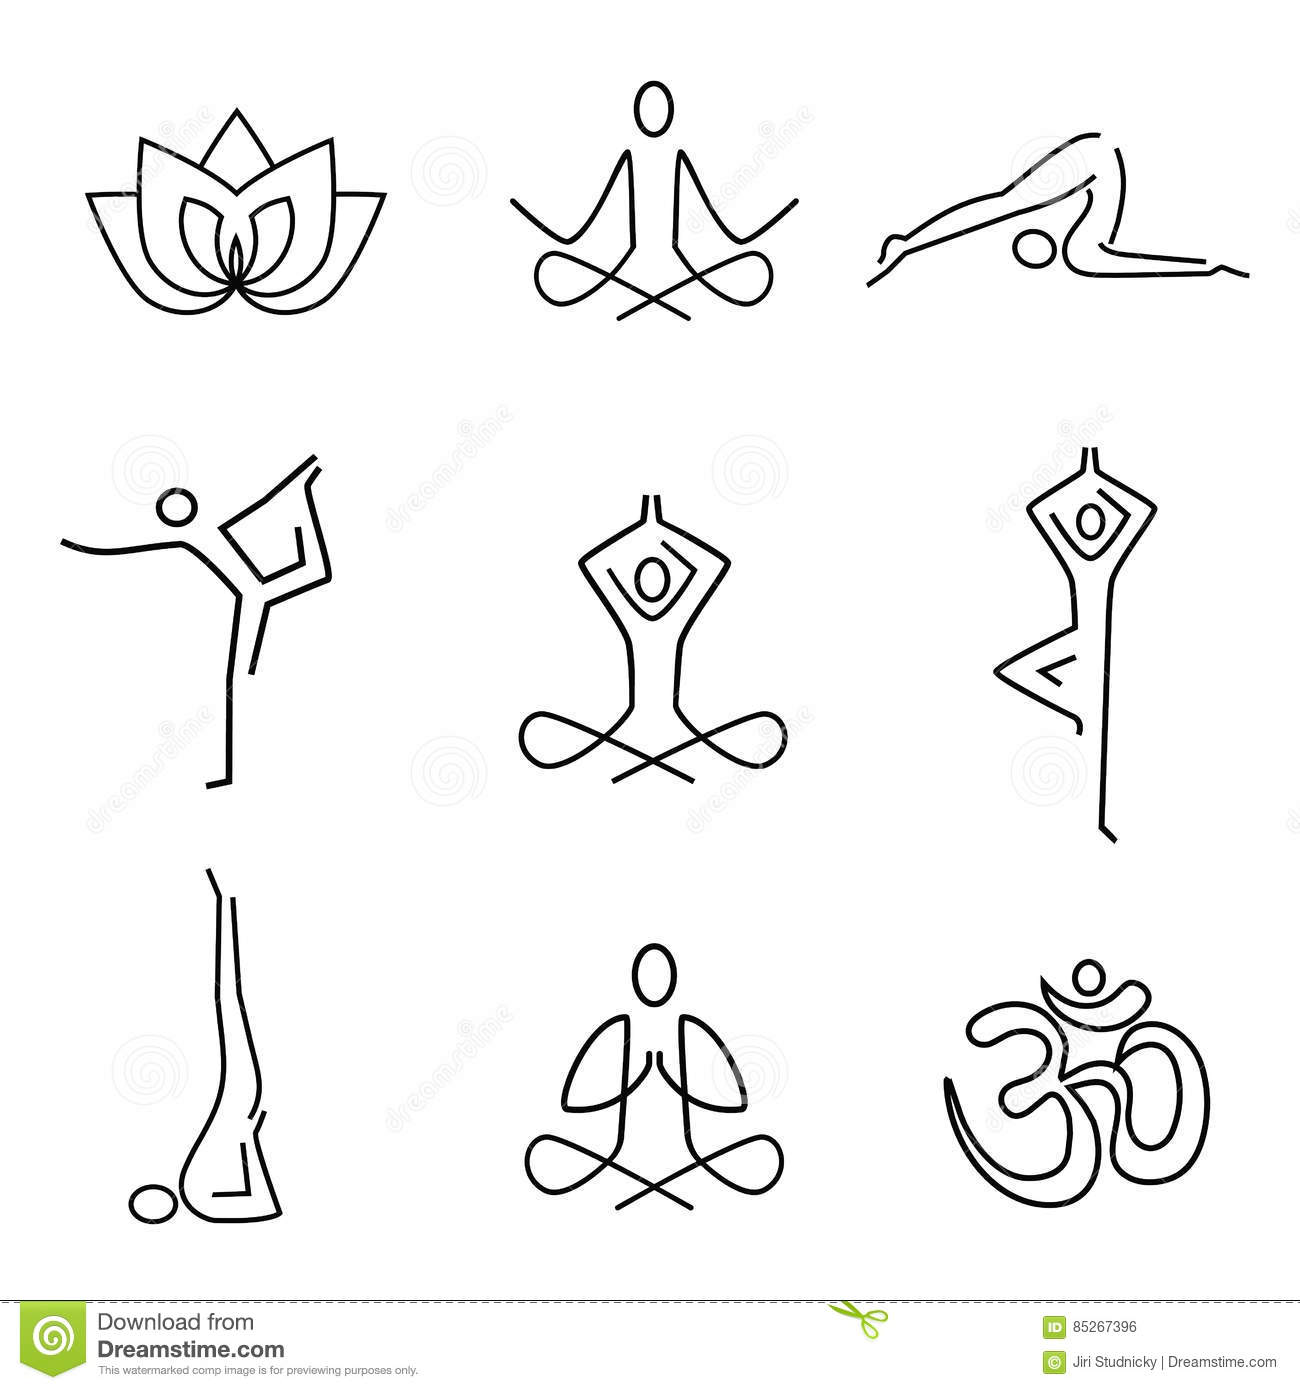 Line Drawing Yoga Pose : Icônes yoga de schéma illustration vecteur image